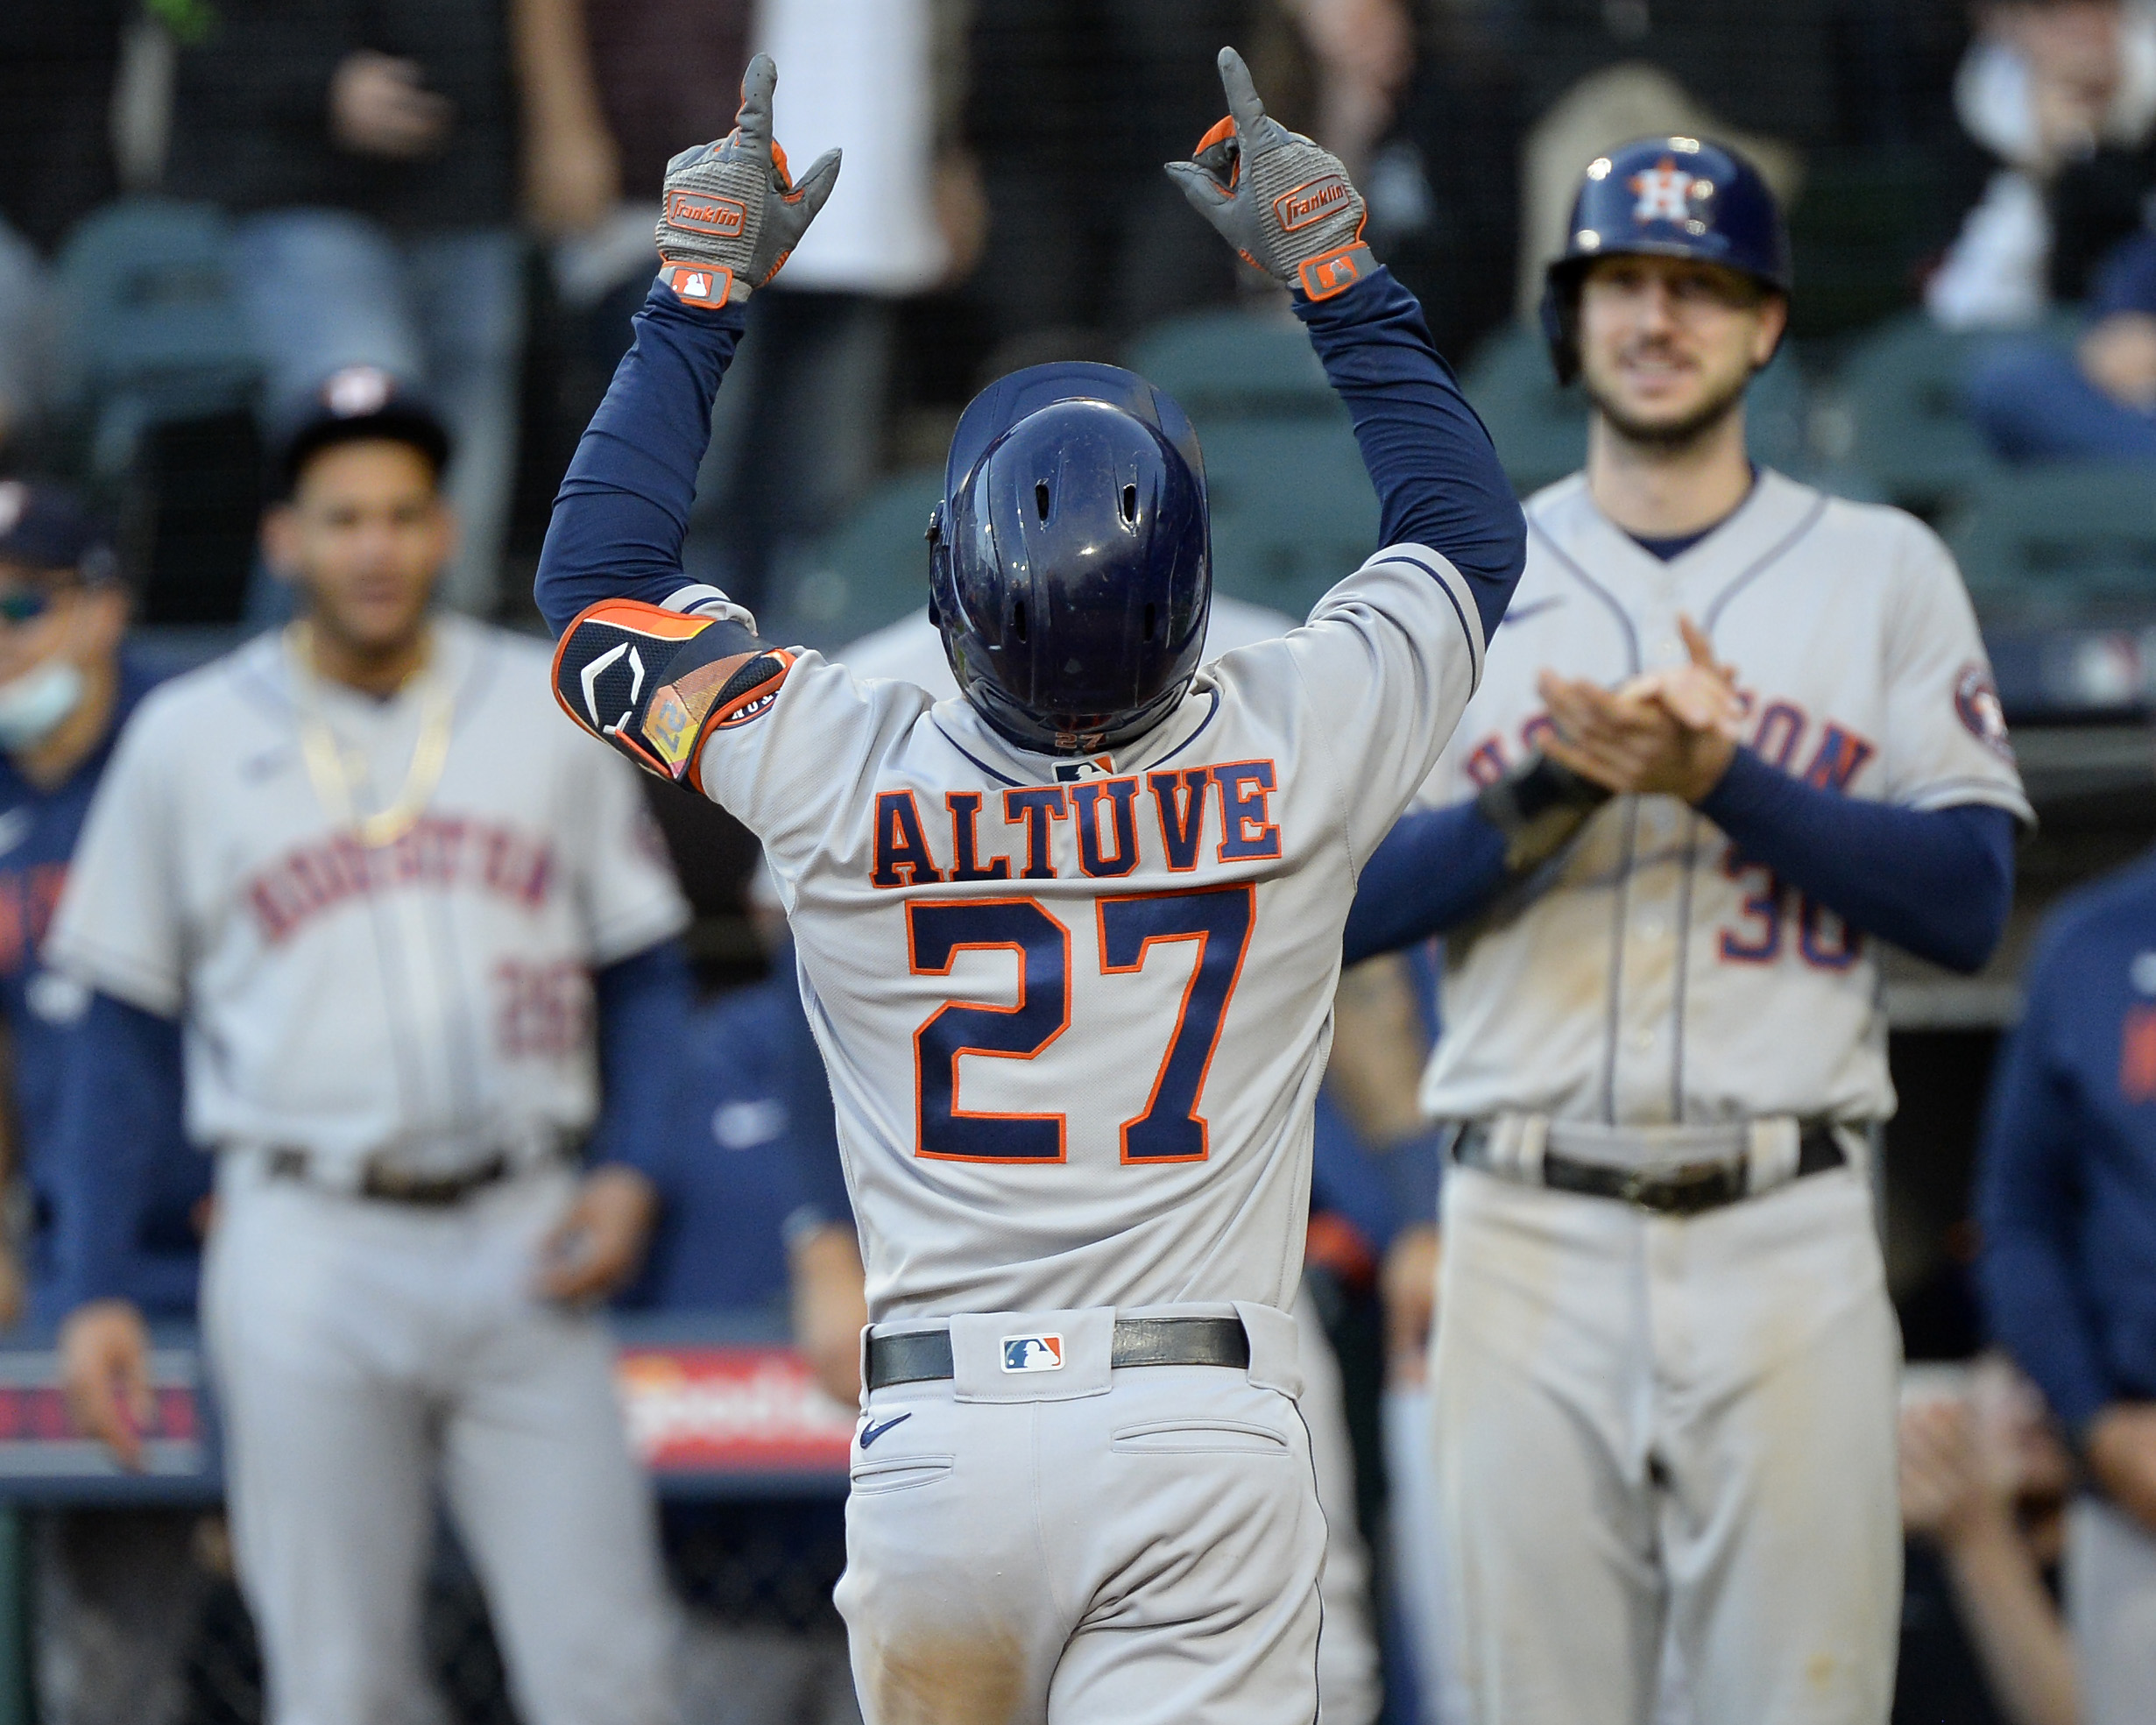 Jose Altuve #27 of the Houston Astros celebrates after hitting a three-run home run in the ninth inning during Game Four of the American League Division Series against the Chicago White Sox on October 12, 2021 at Guaranteed Rate Field in Chicago, Illinois.